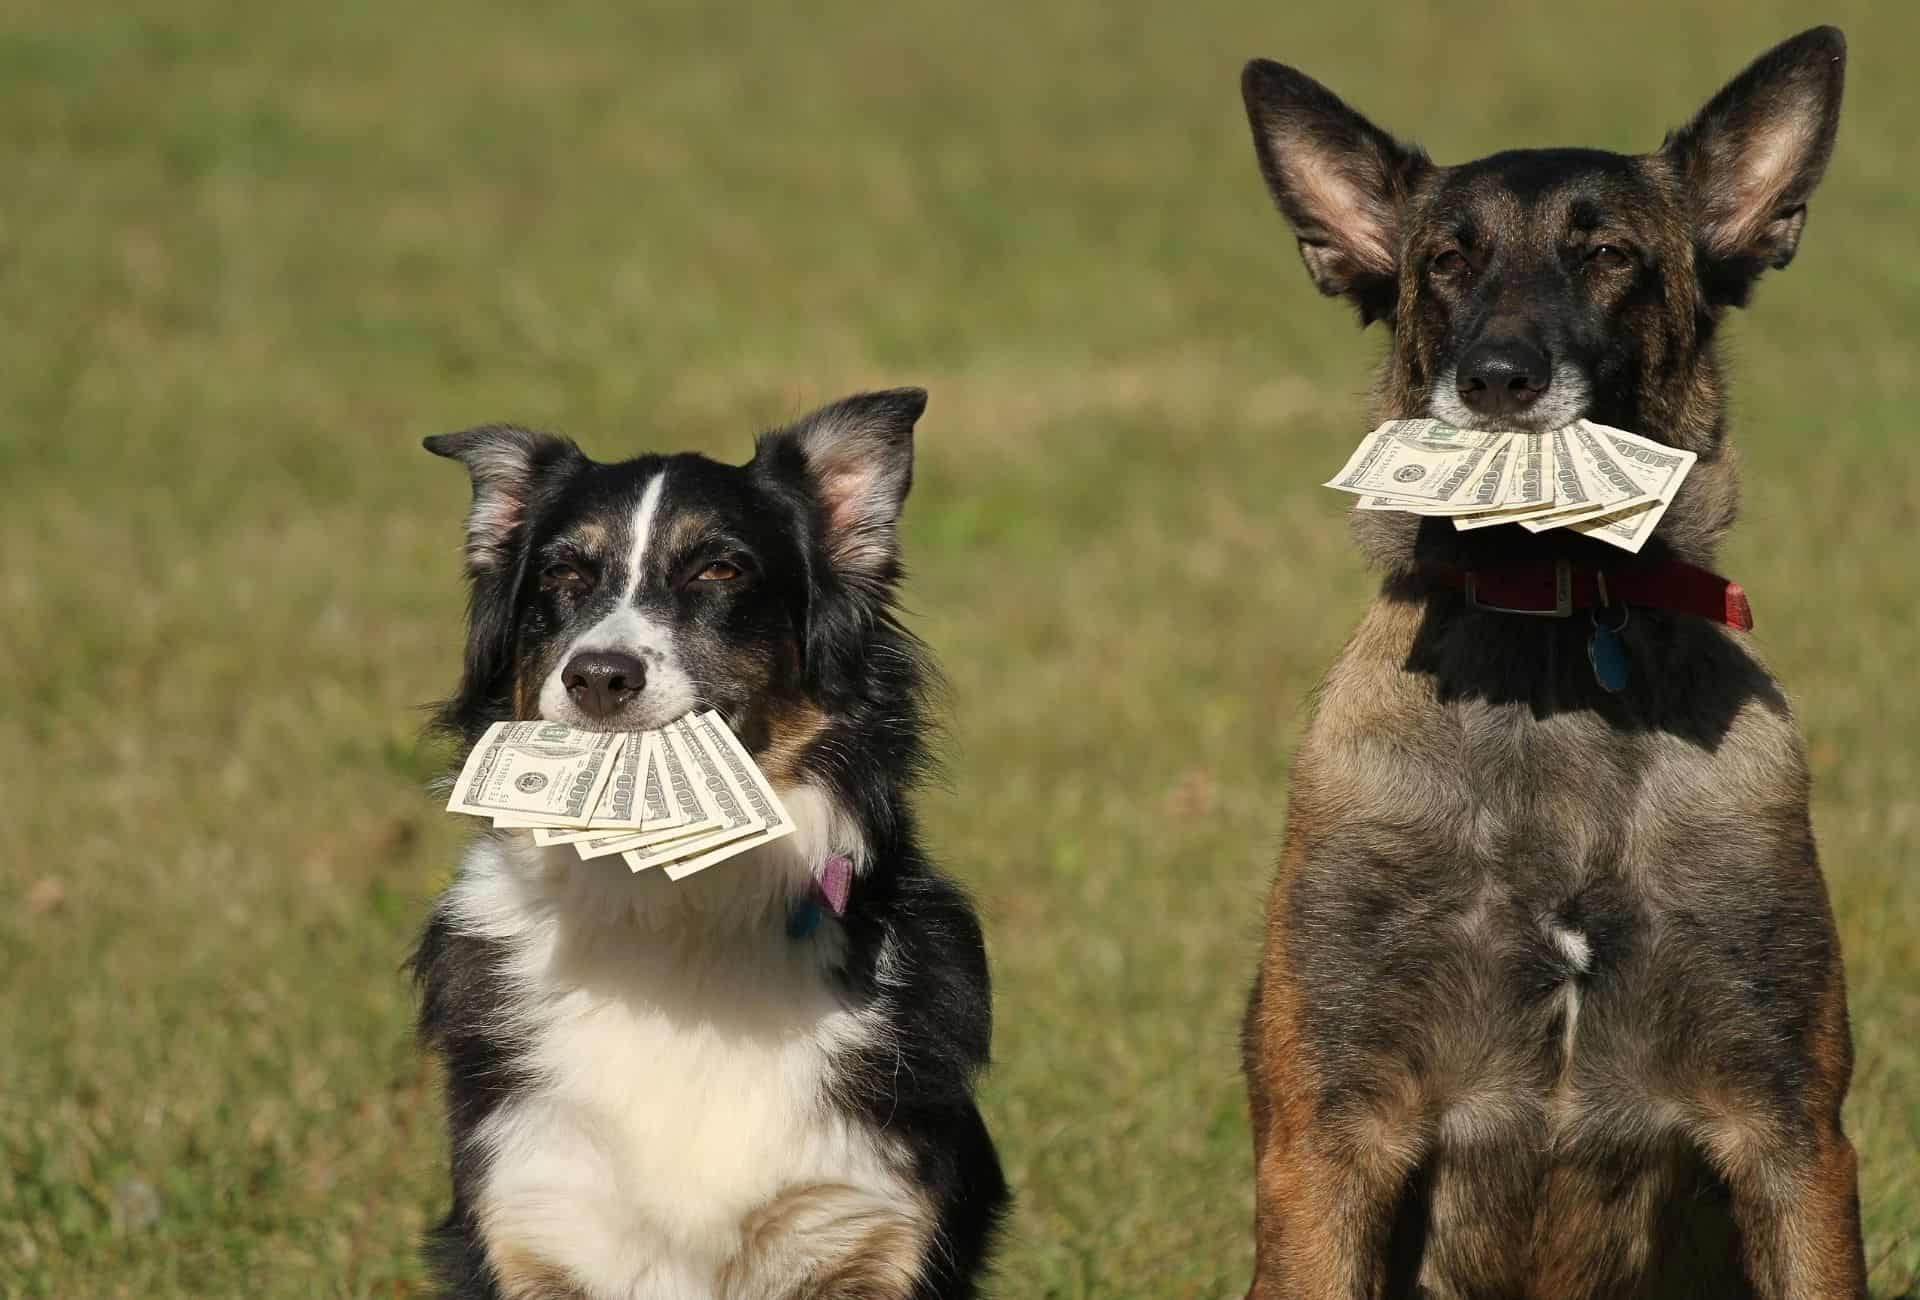 Two adult dogs are holding a couple of dollar bills with their mouth.